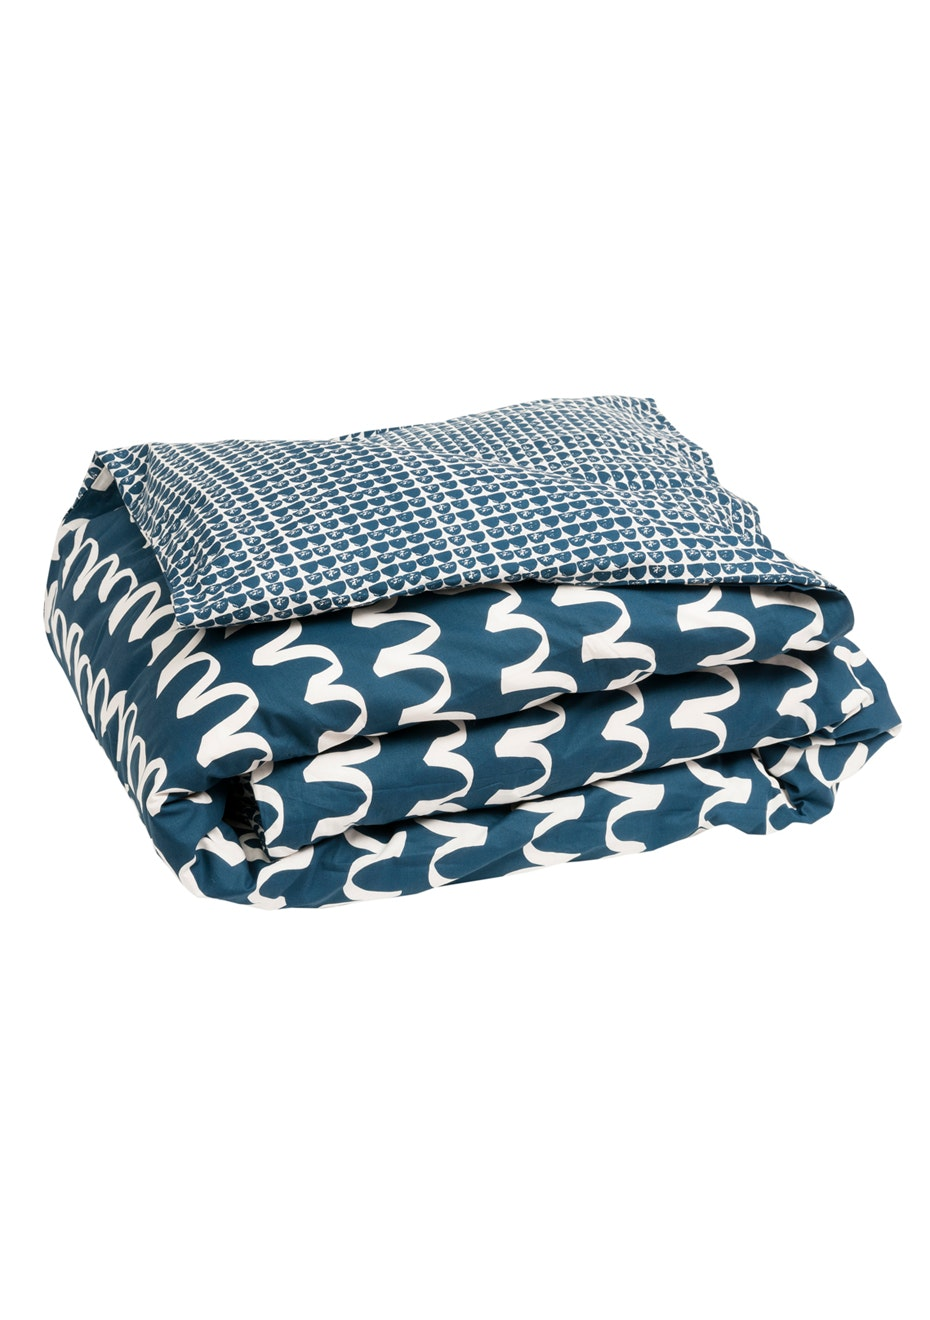 General Eclectic - BlueWaves Duvet Cover - Single